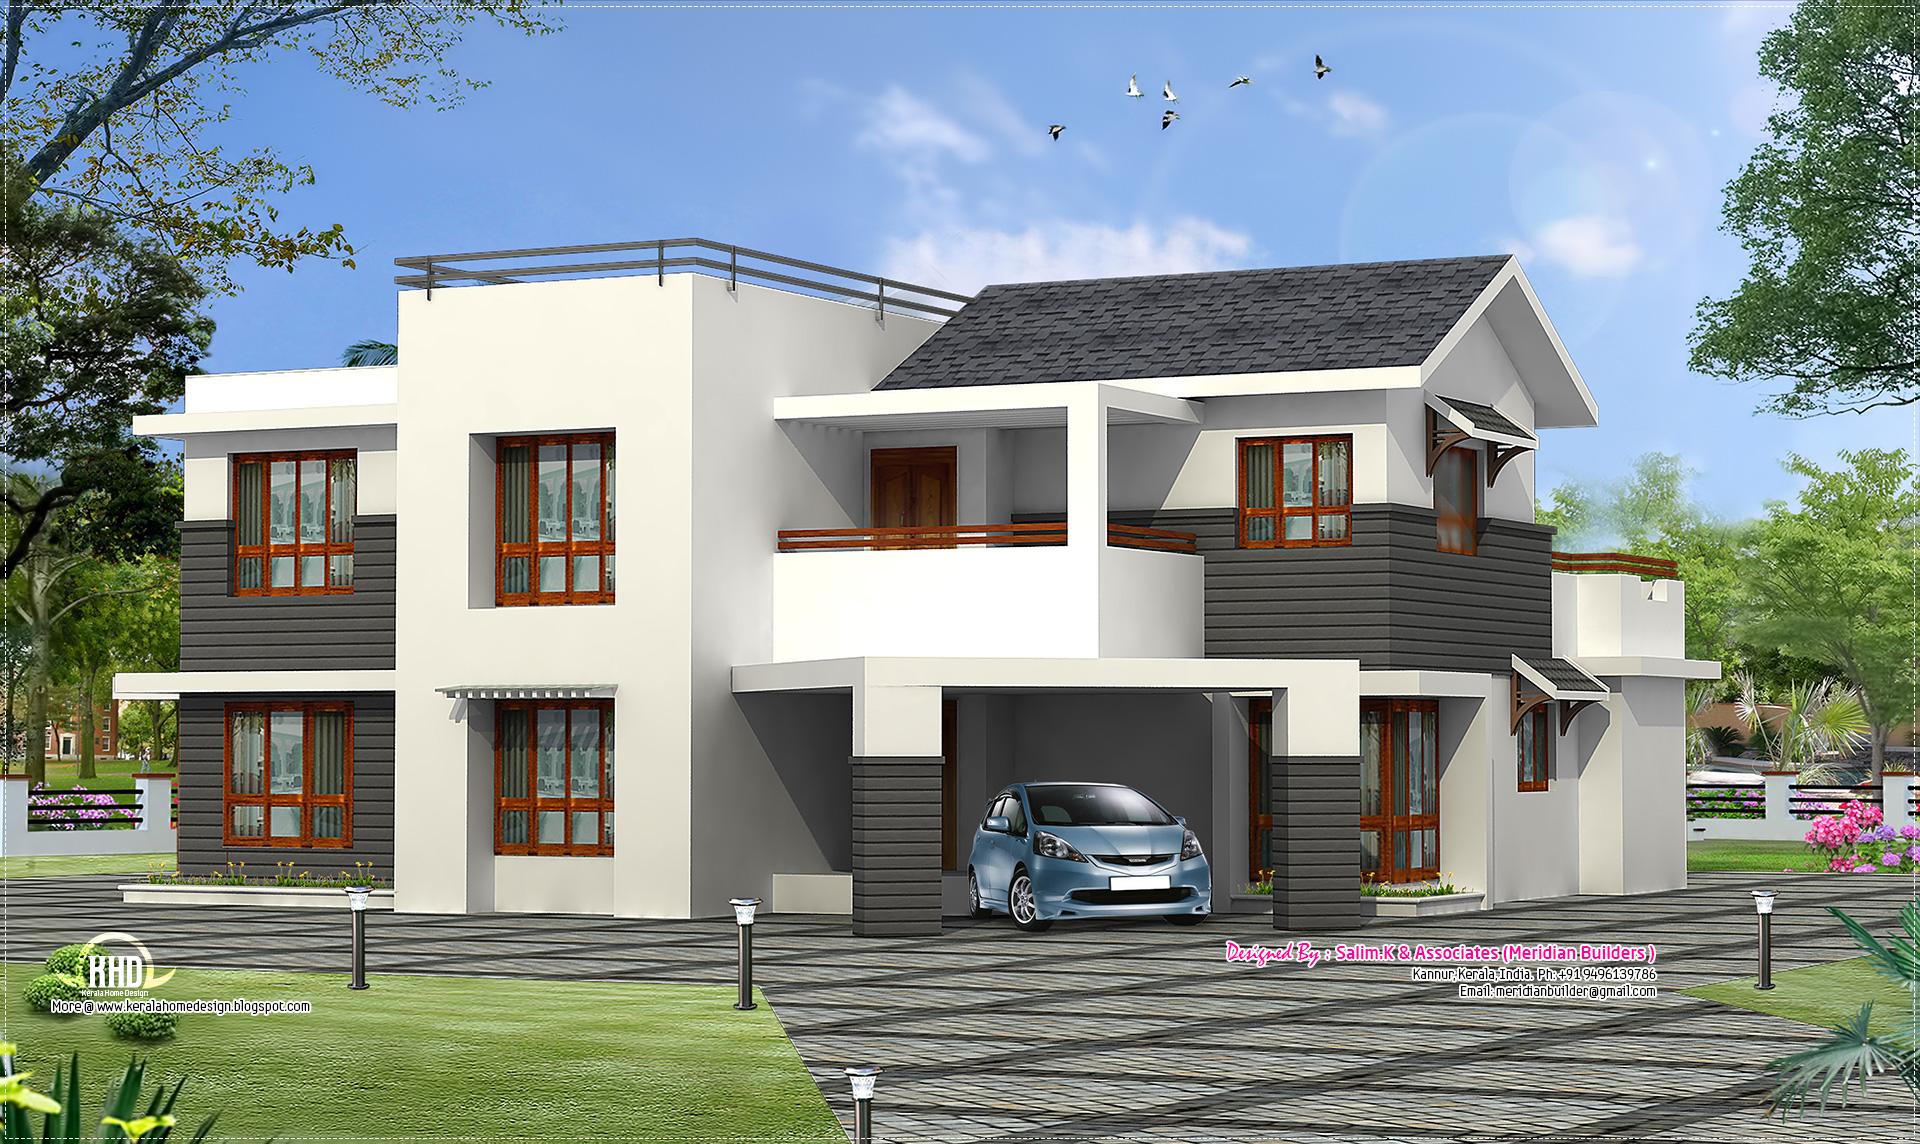 Contemporary villa design from kannur kerala kerala for Villa plans in kerala